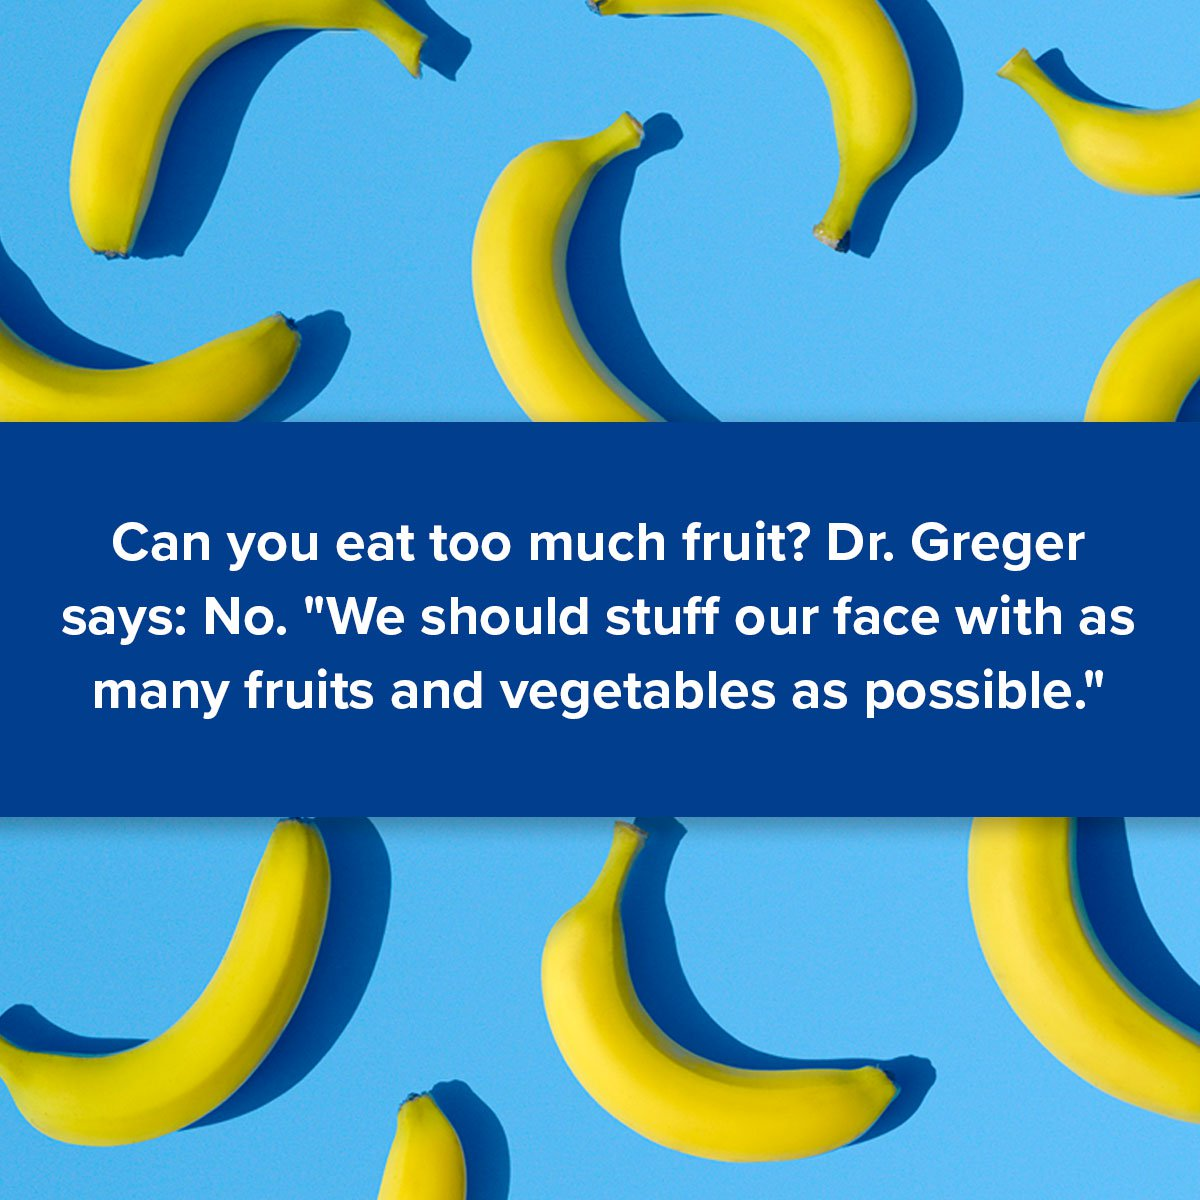 "Can you eat too much fruit? Dr. Greger says: No. ""We should stuff our face with as many fruits and vegetables as possible."""